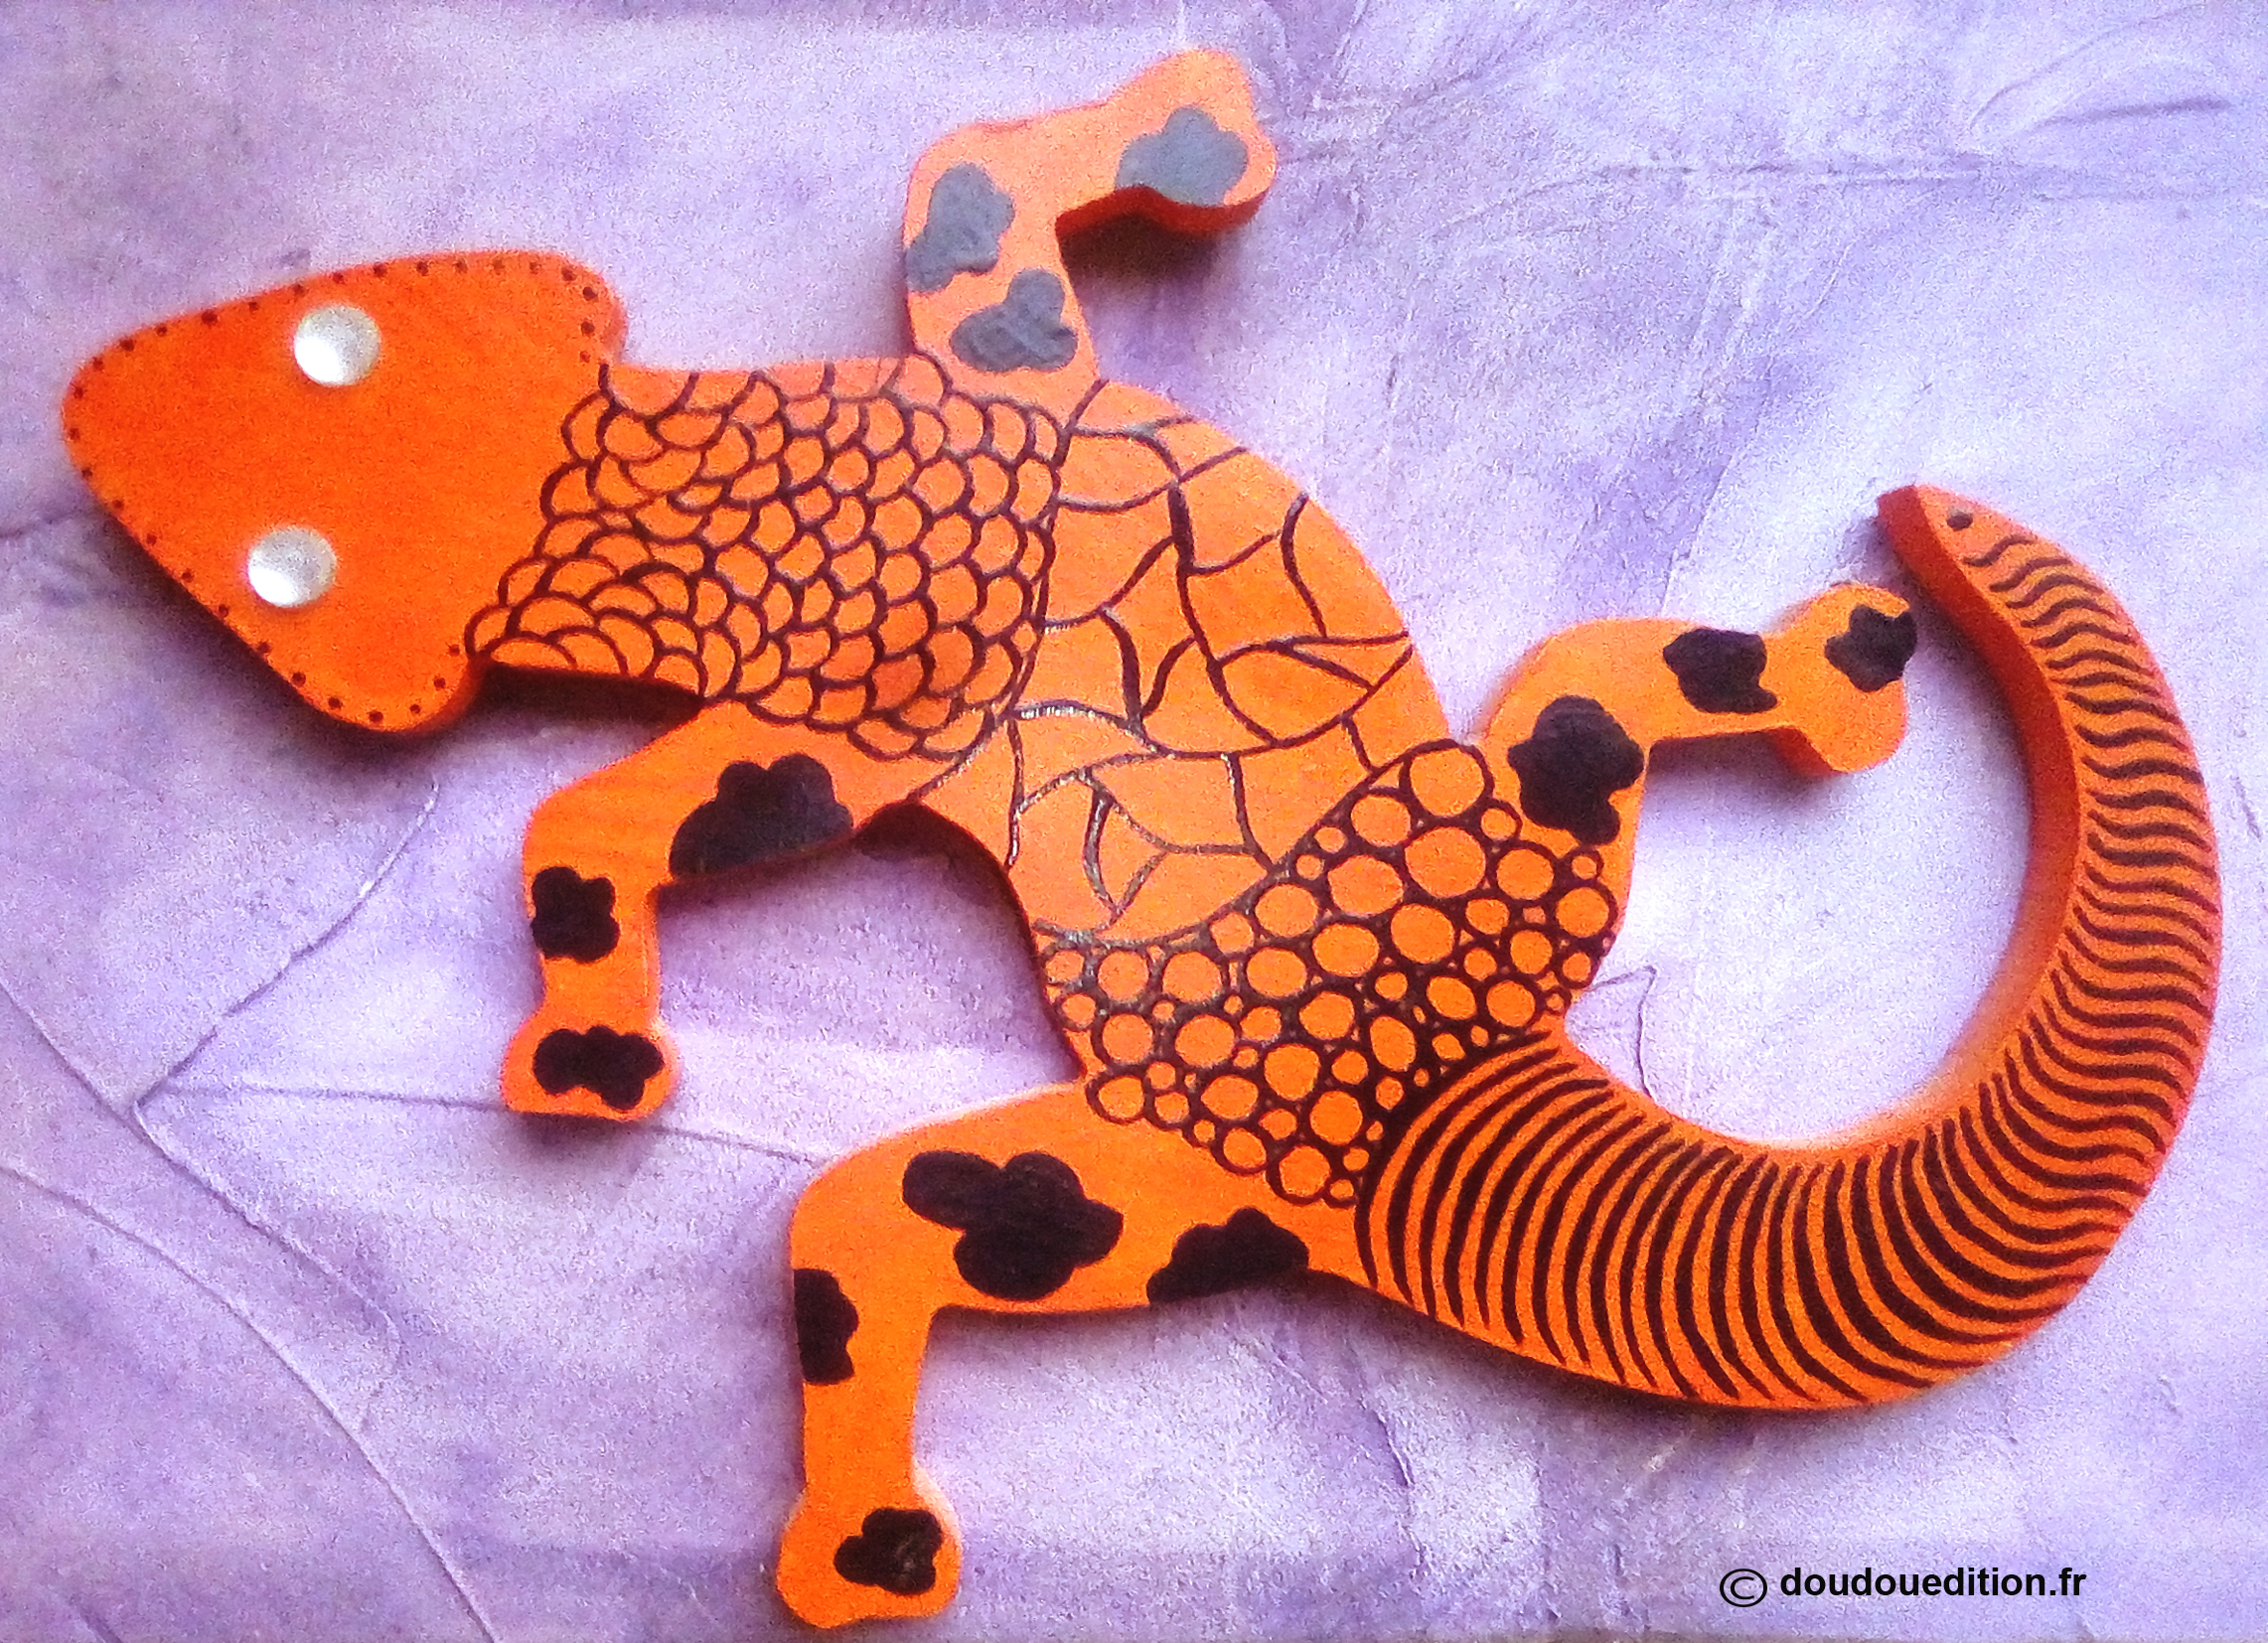 Lézard décoratif en bois, Fun Orange !